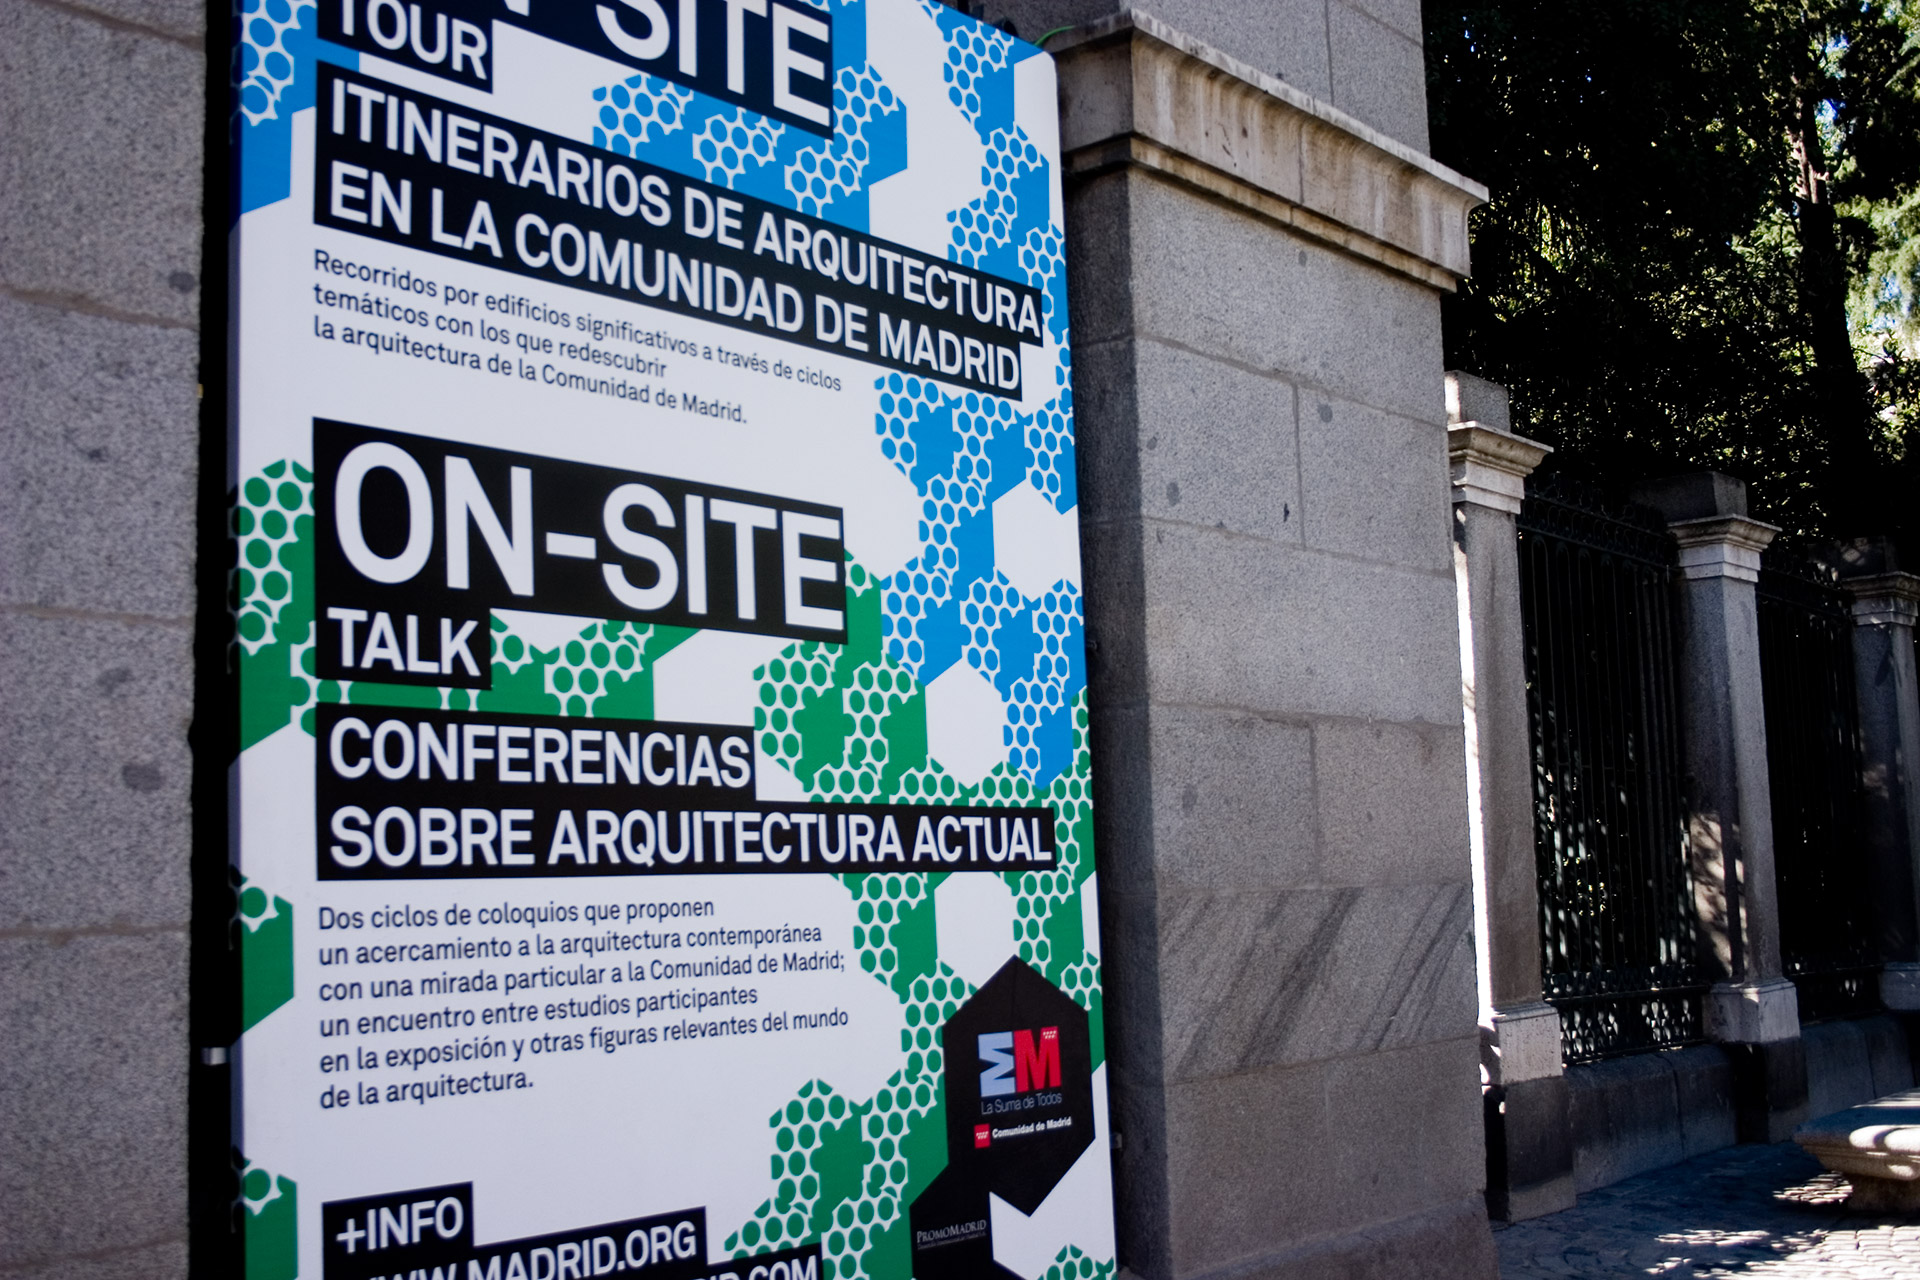 ON-SITE. Aquitectura Contemporánea en la Comunidad de Madrid